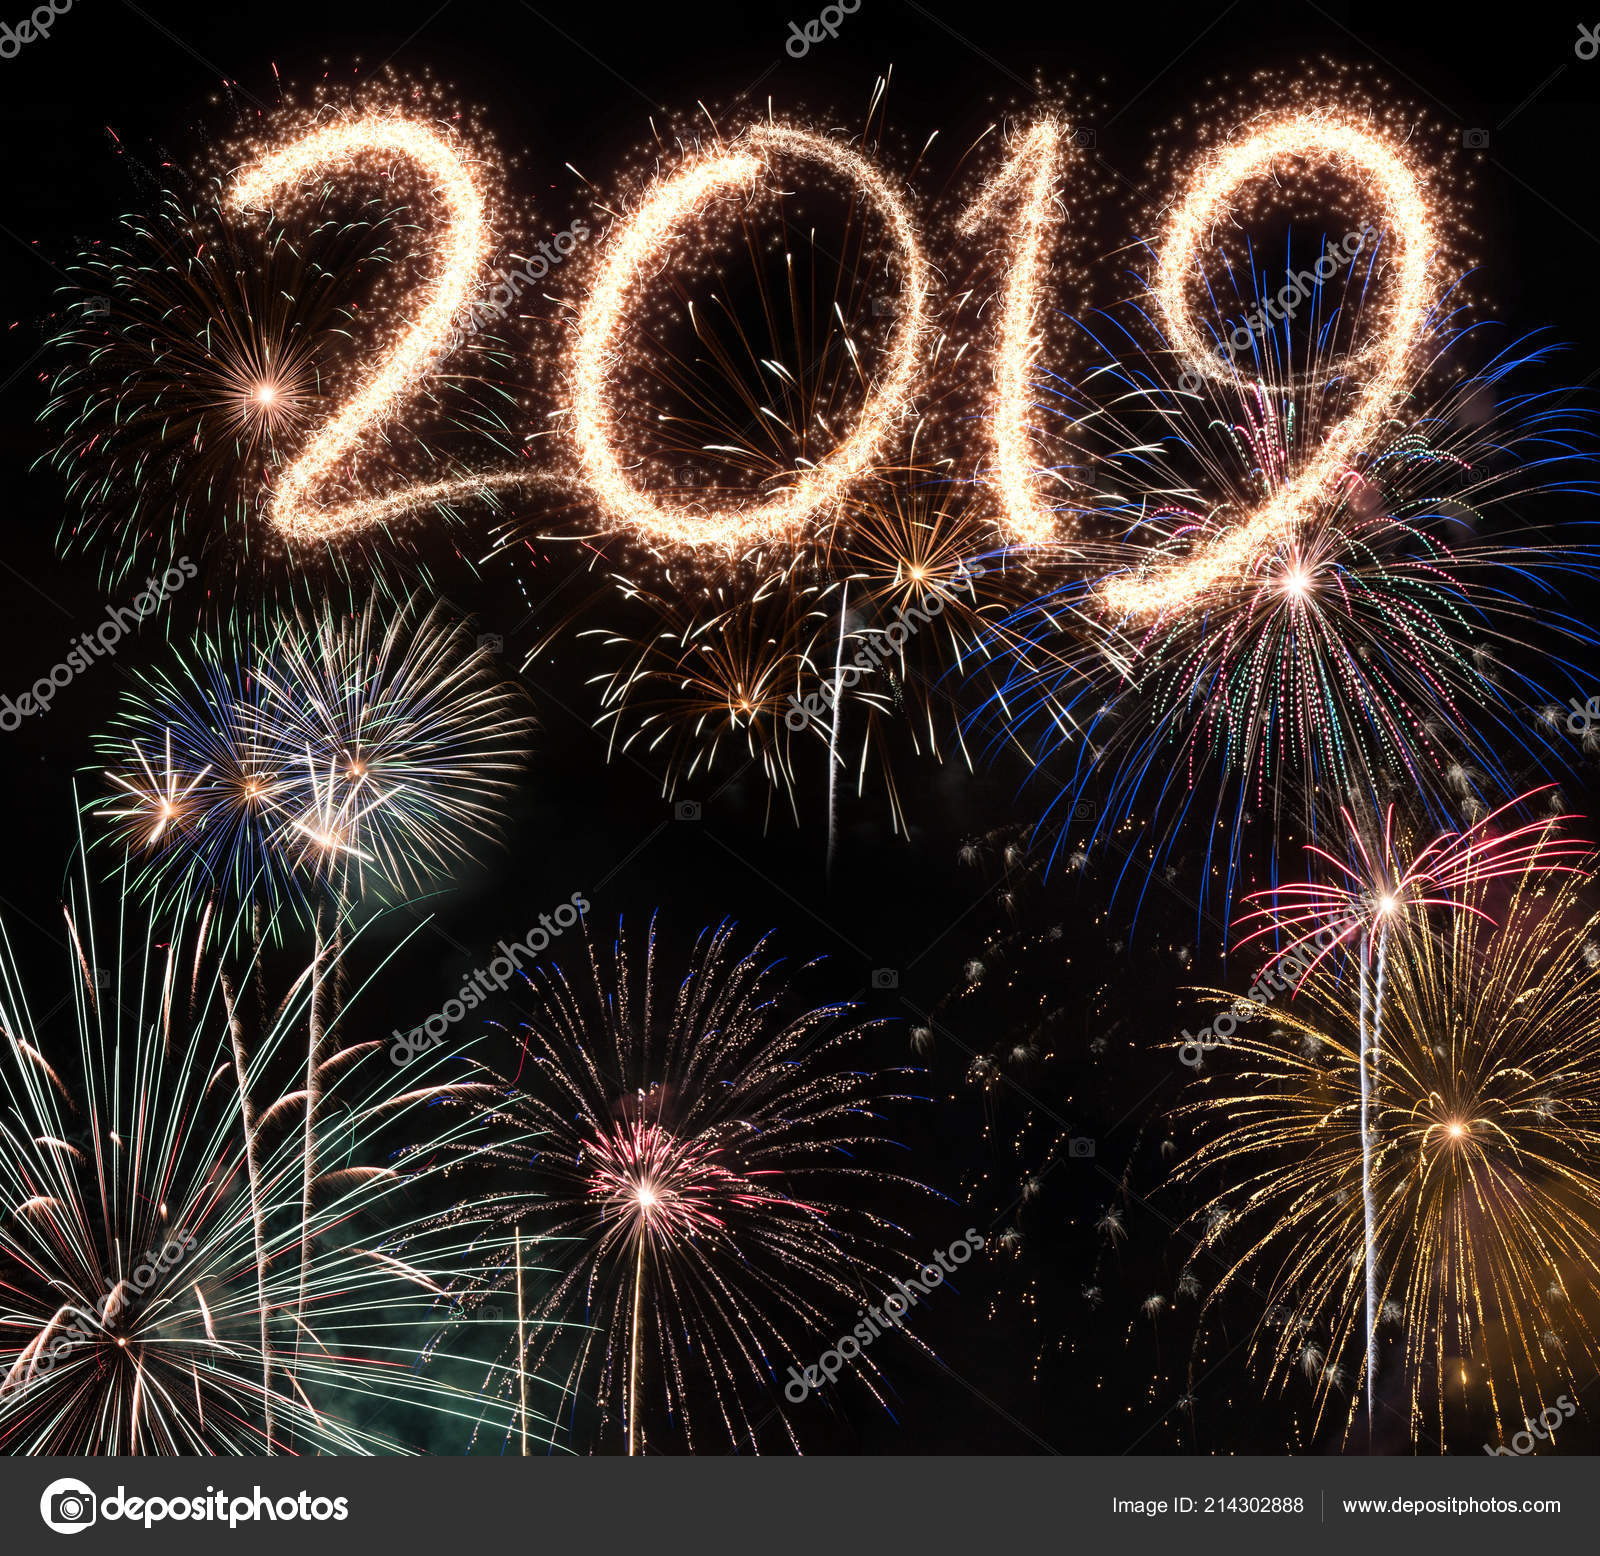 new year eve 2019 fireworks black background stock photo